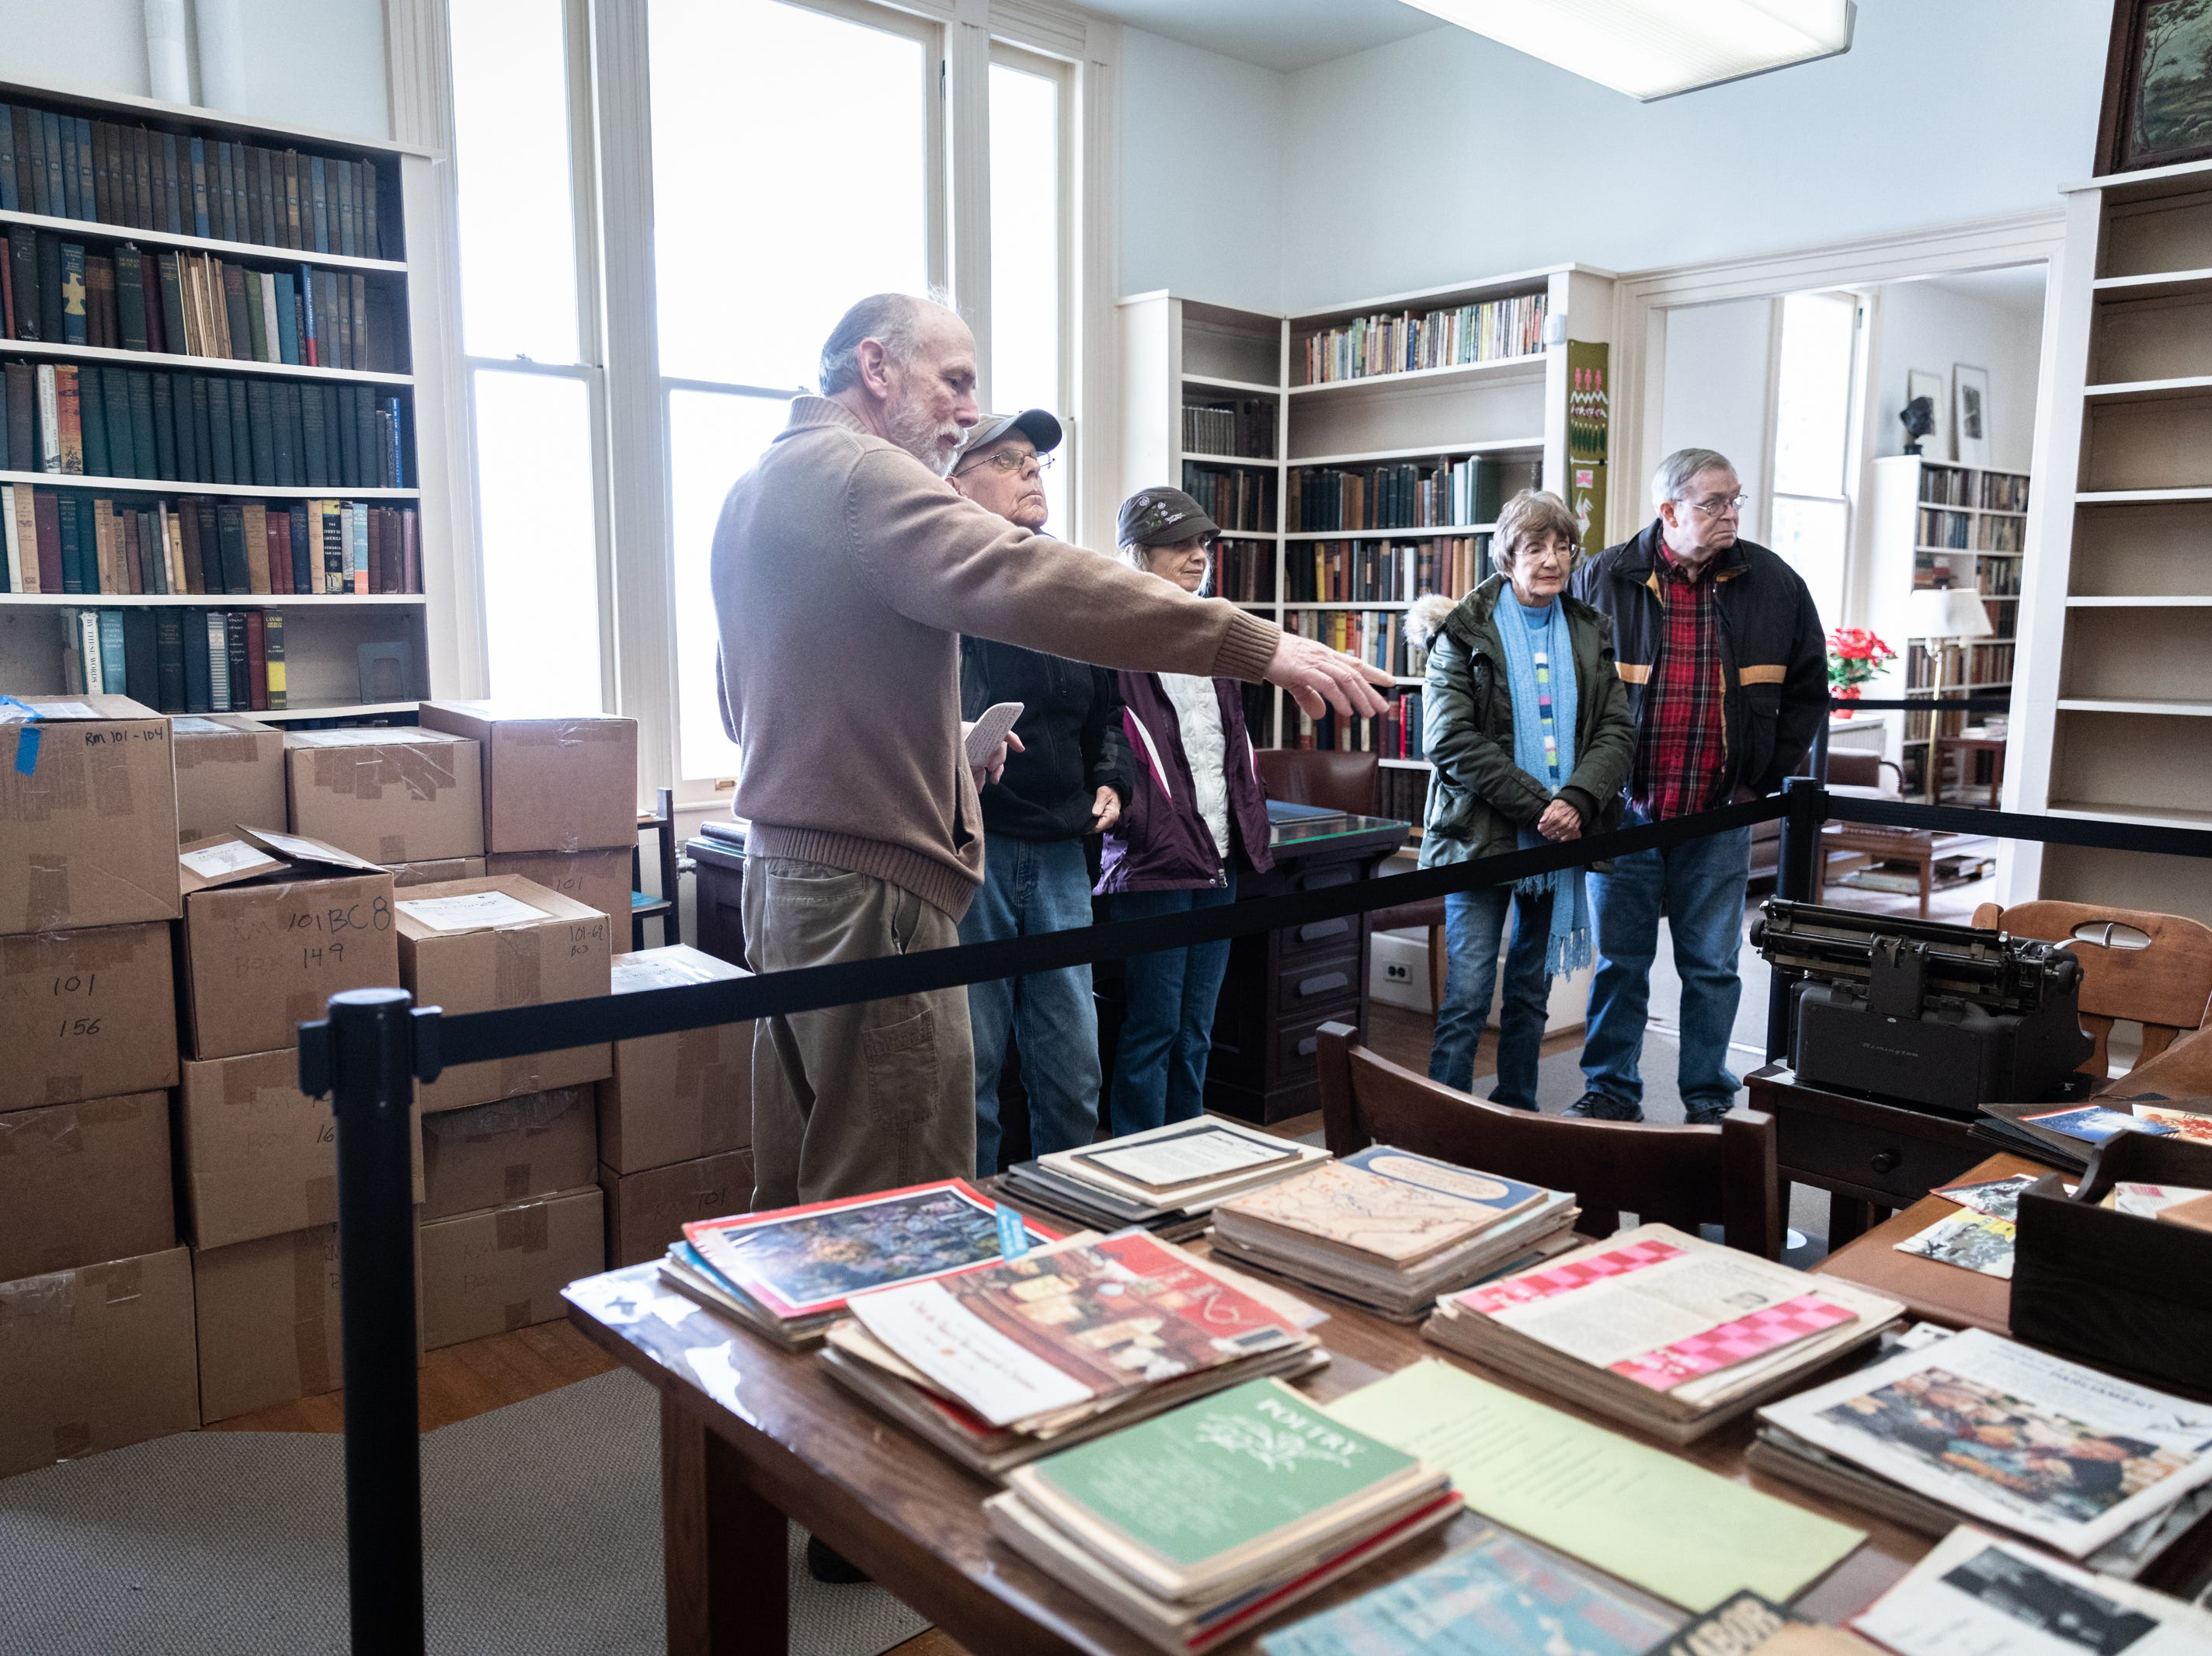 Bill White, a volunteer with the Carl Sandburg home, guides a tour through the house where the park celebrated its 50th anniversary Nov. 24, 2018, with their Christmas at Connemara event featuring live music, storytellers and tours of the home.